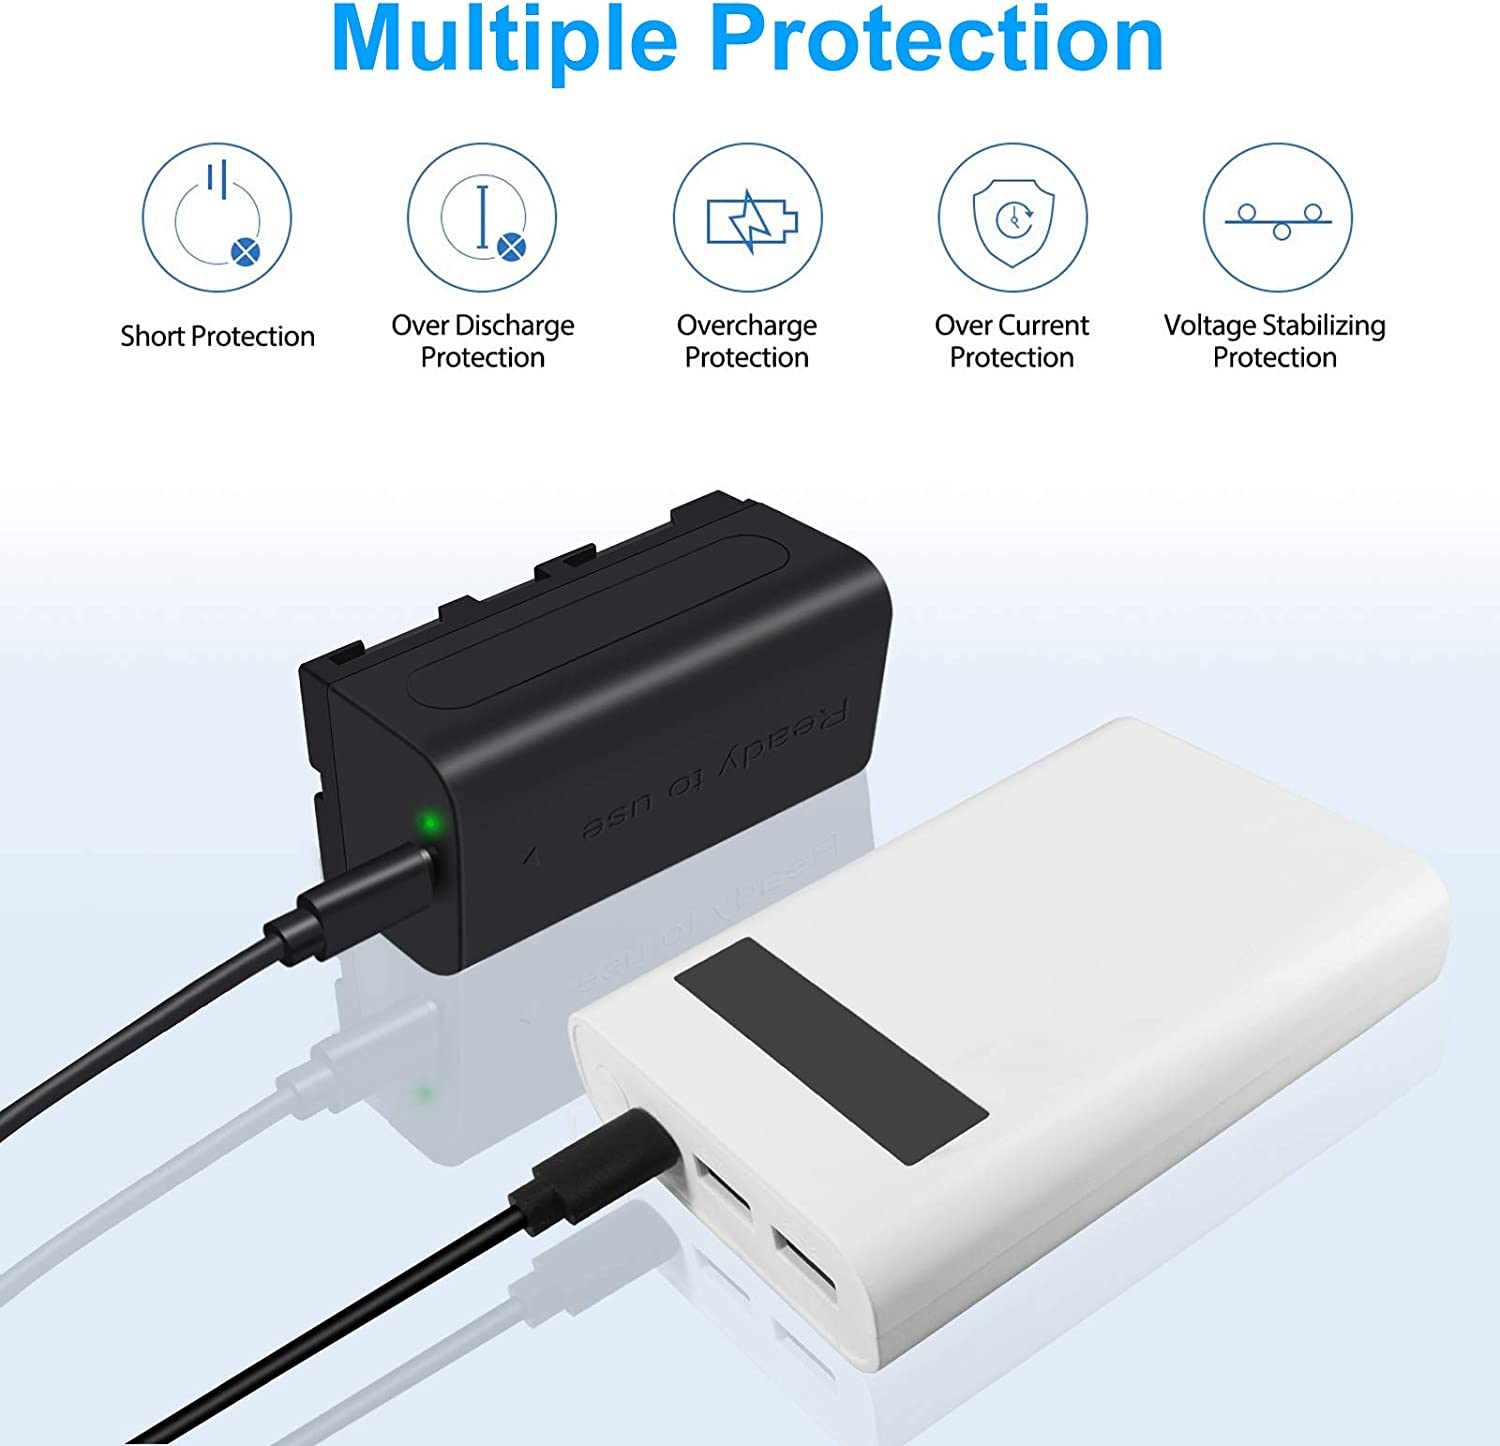 PALO NP-F550 NP-F570 NP-F530 NP-F330 Battery with Micro USB Charger Port for Sony CCD-RV100 CCD-RV200 CCD-SC5 CCD-SC6 CCD-SC55 CCD-SC65 CCD-TRV66 CCD-TRV67 DCM-M1 DCR-SC100 LED Video Light